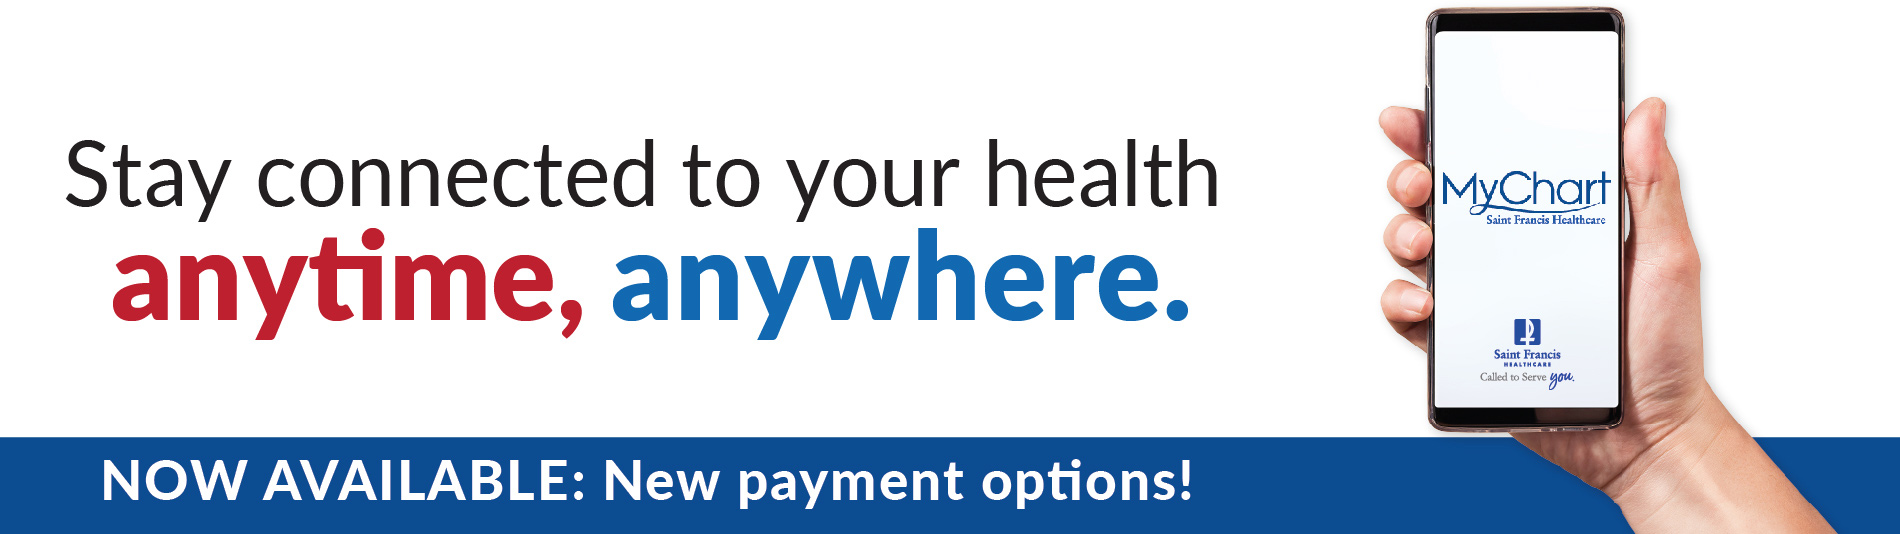 MyChart - Stay connected to your health...anytime, anywhere! New payment options available!